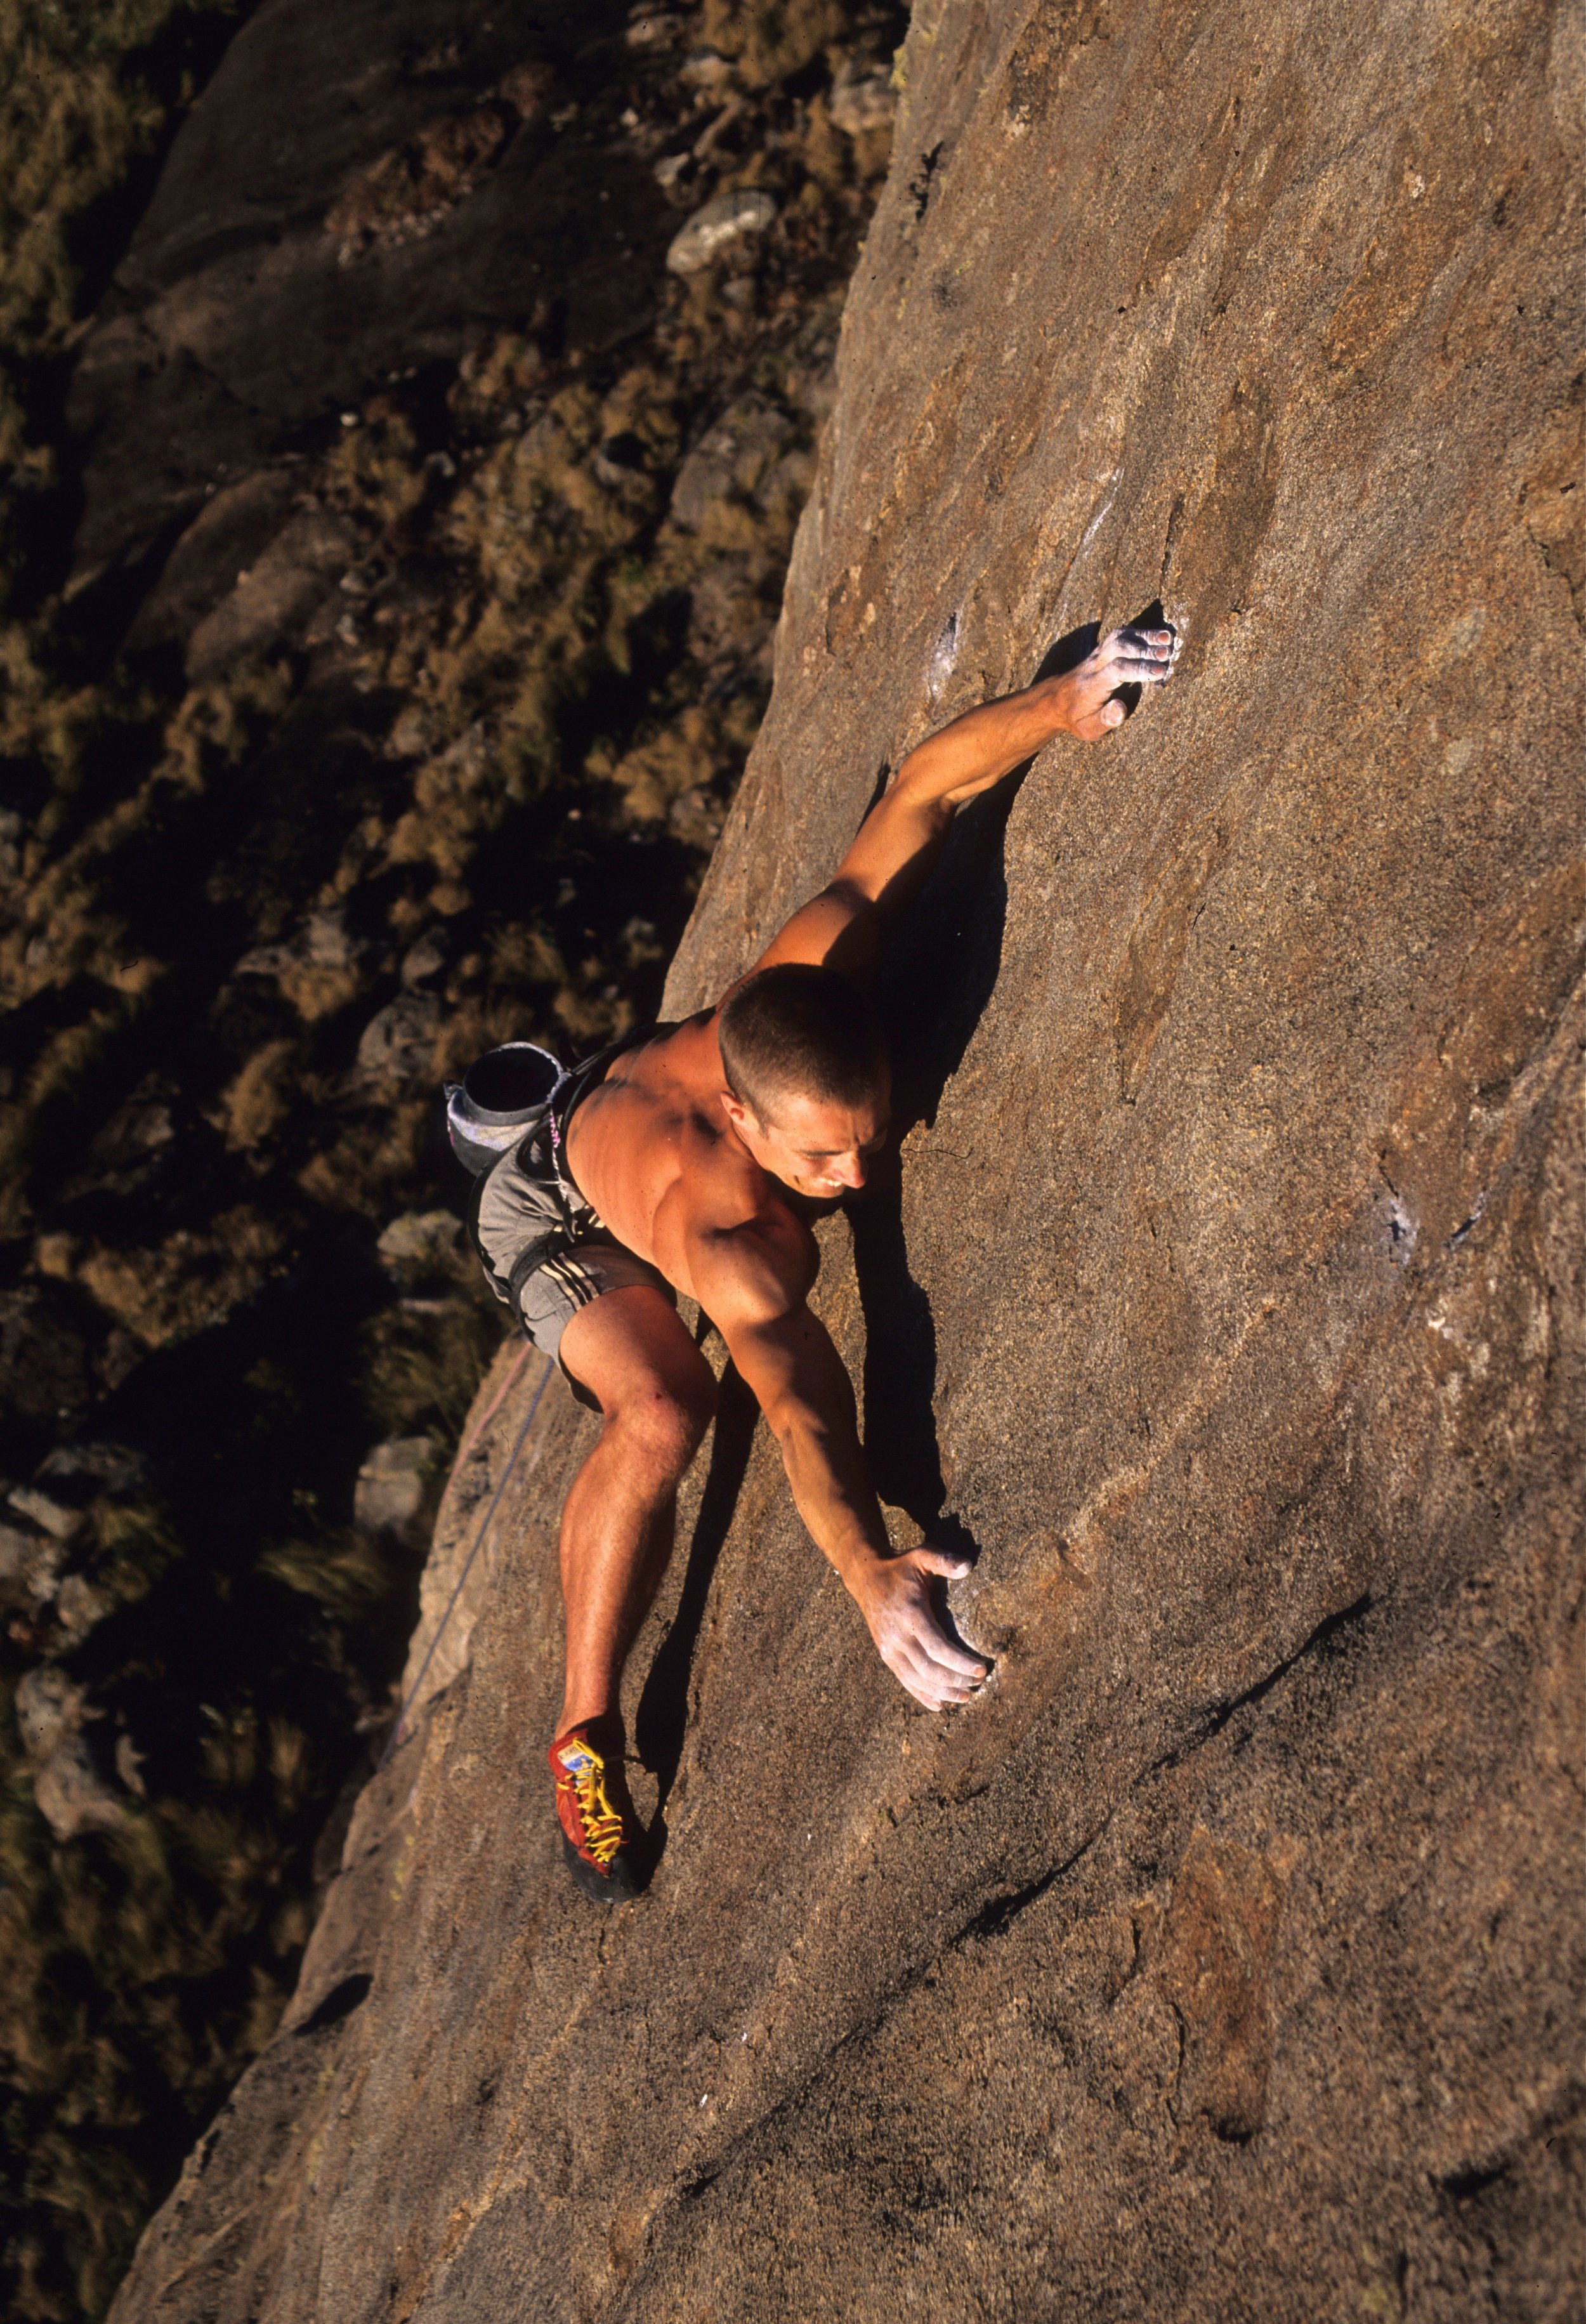 The delicate and poorly protected crux of Boiling Point E8 6b, Brazil. First ascent in 2000.  Photo: Mike Robertson